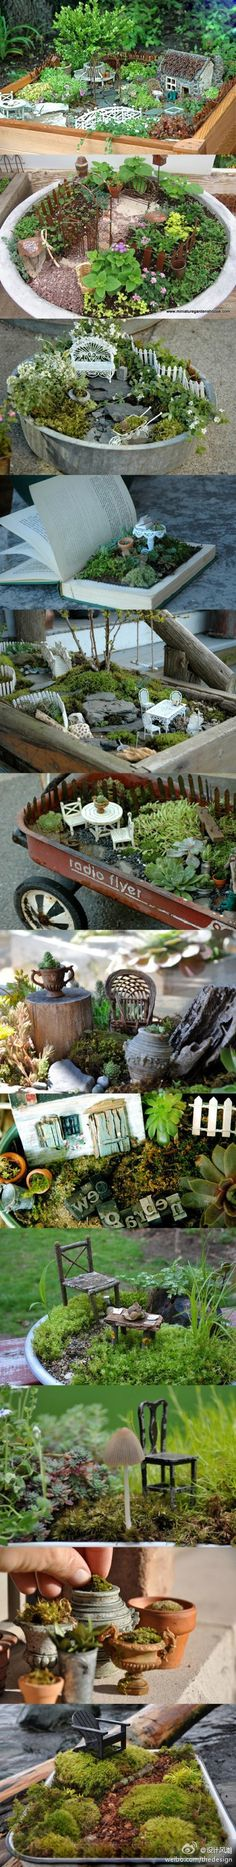 These are beautiful little gardens! Miniature gardens @ DIY Home Ideas